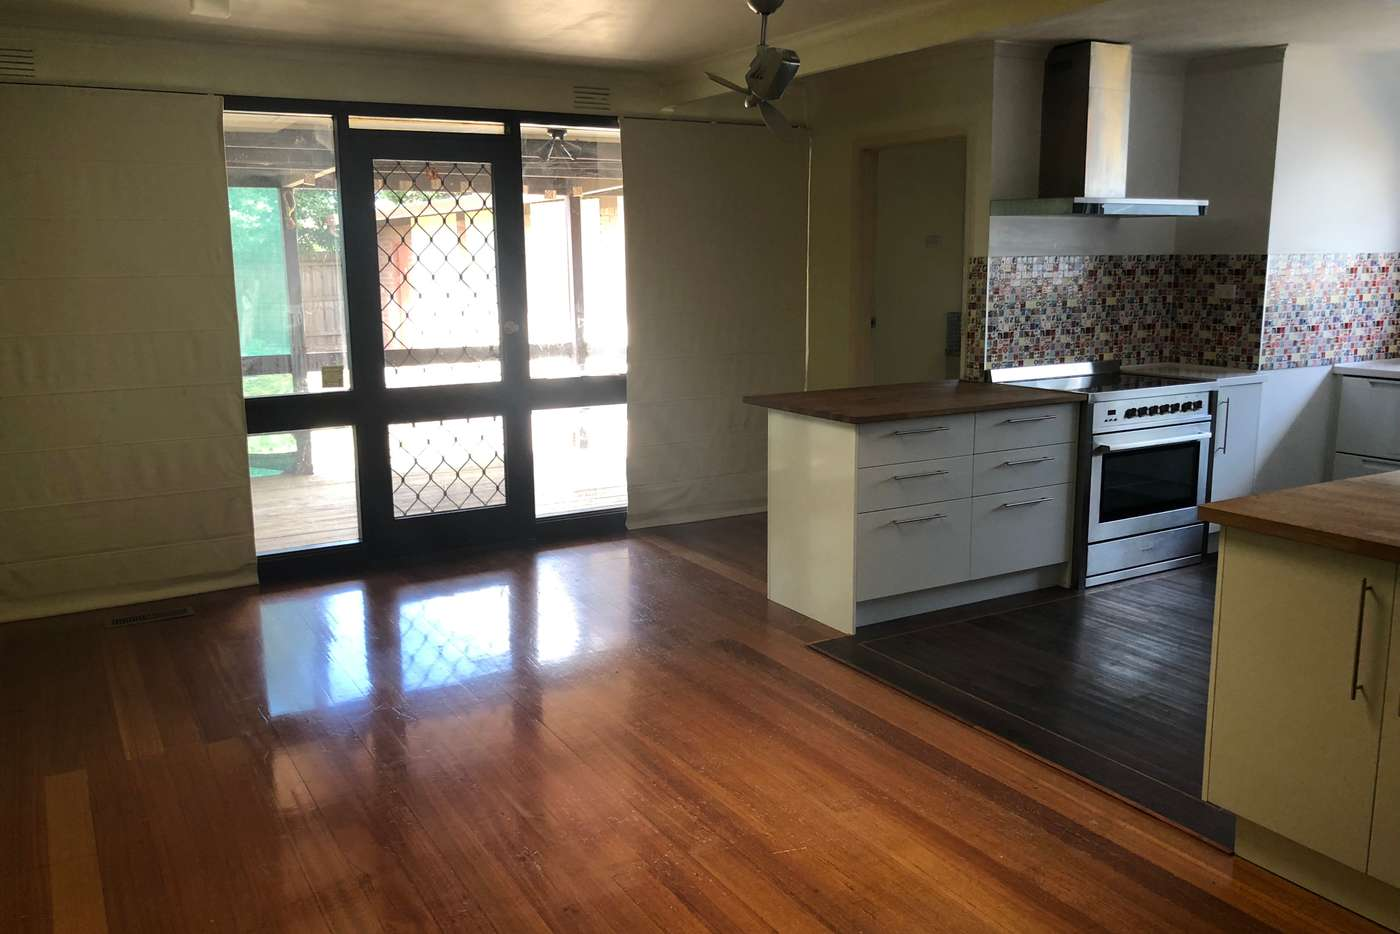 Main view of Homely house listing, 9 Moore Court, Werribee VIC 3030